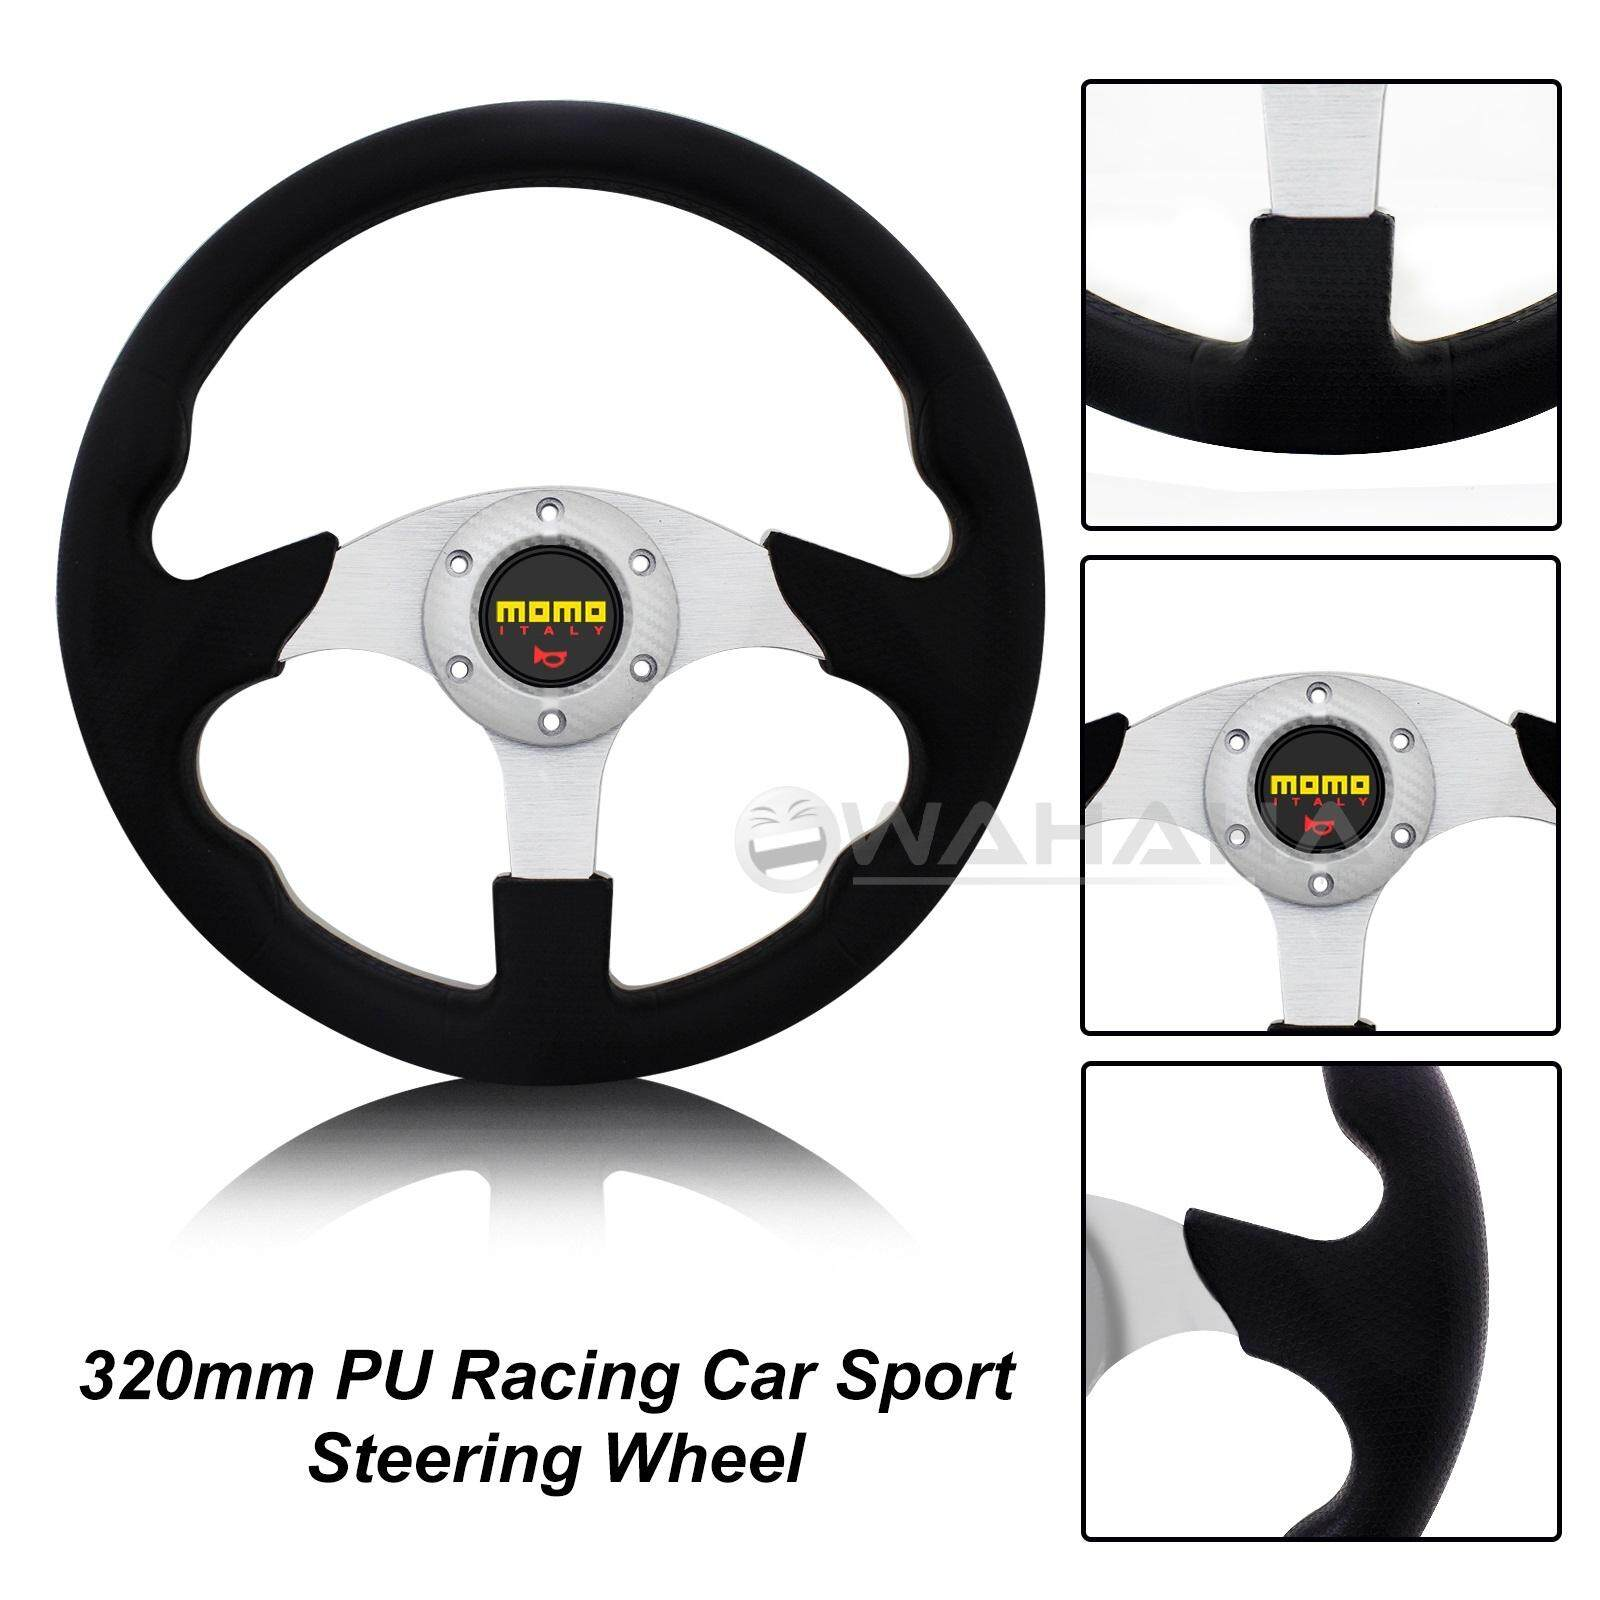 RACER II SILVER 320mm SPORT STEERING WHEEL WITH HORN BUTTON